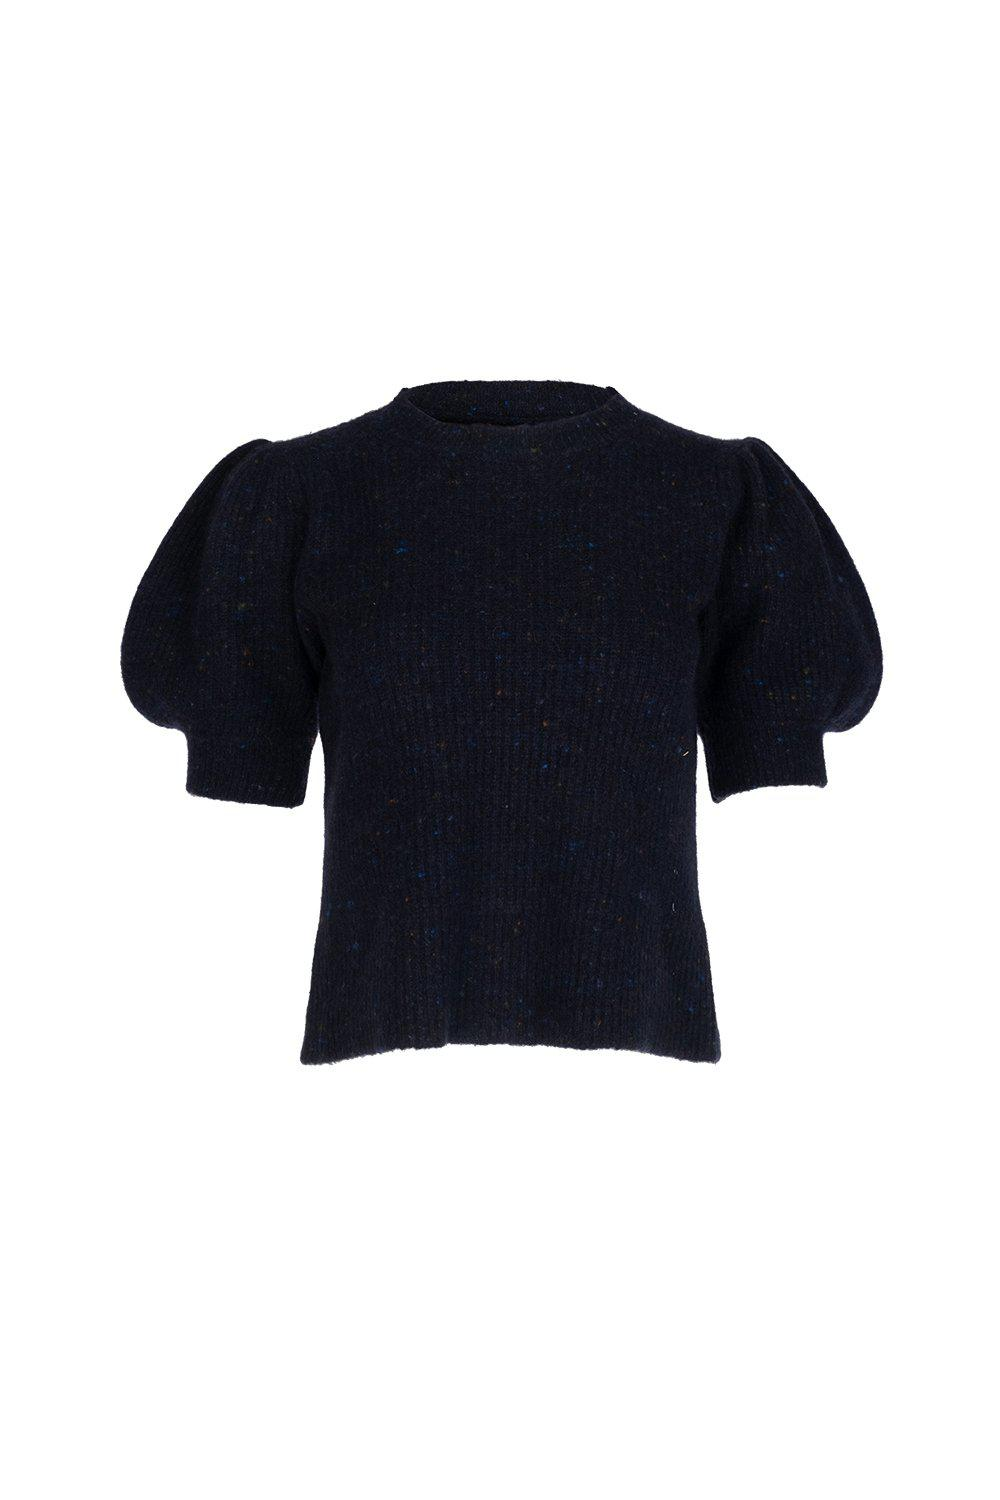 Cleo Pullover